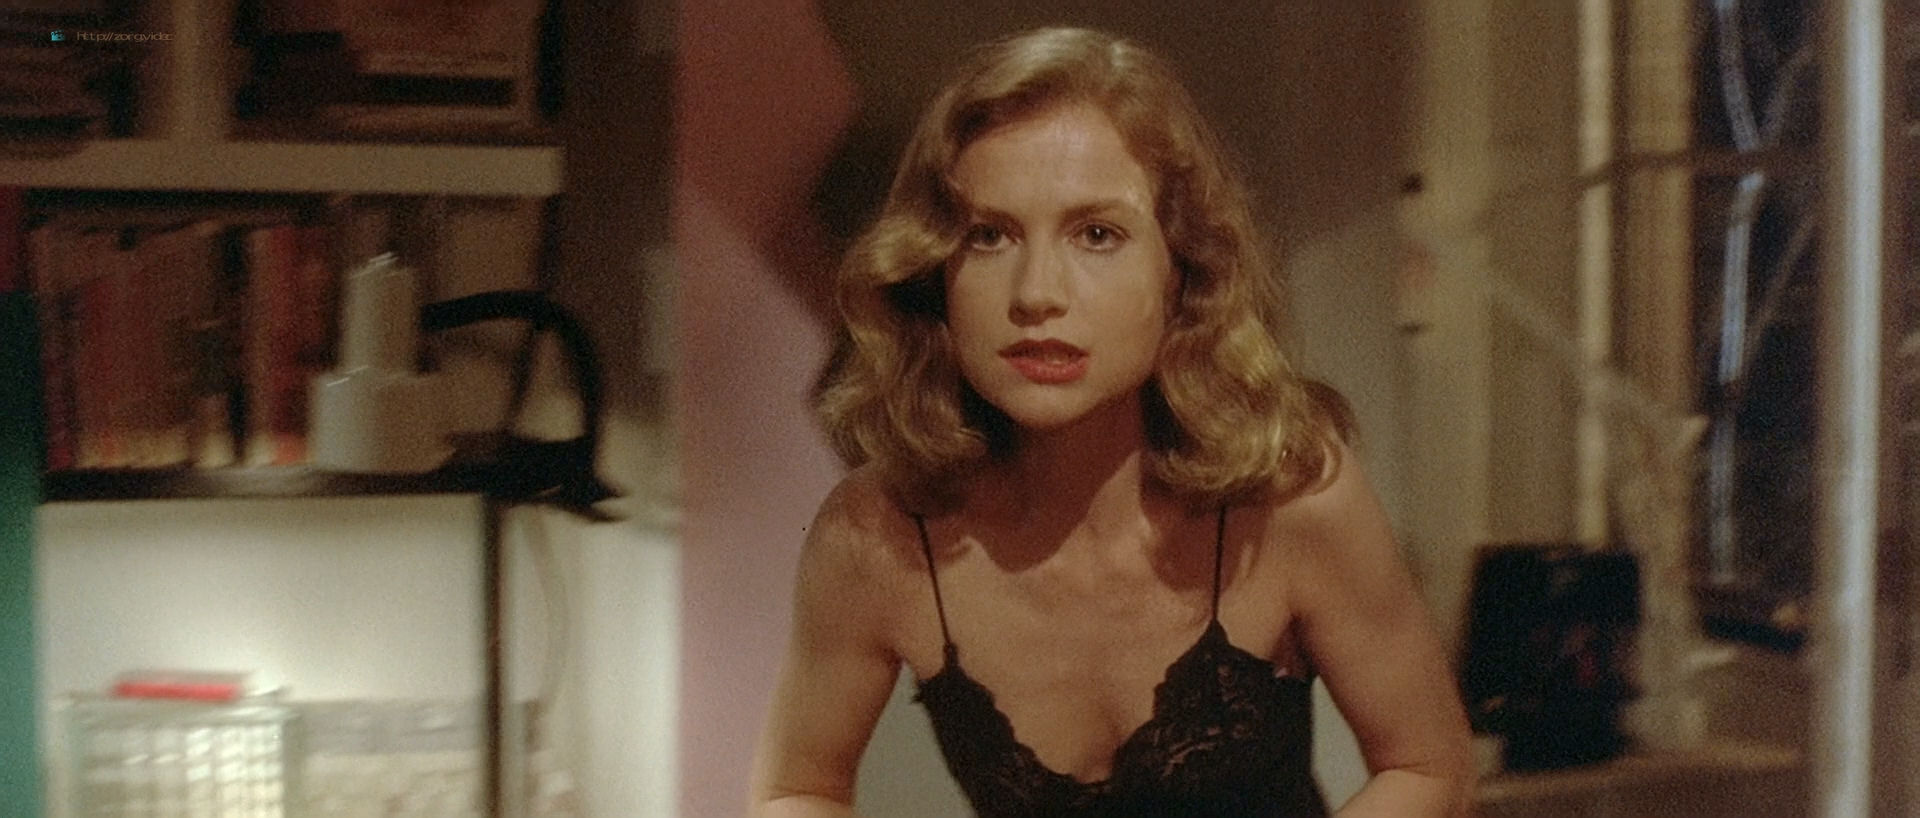 Isabelle Huppert nude topless and butt Elizabeth McGovern nude - The Bedroom Window (1987) HD 1080p BluRay (8)